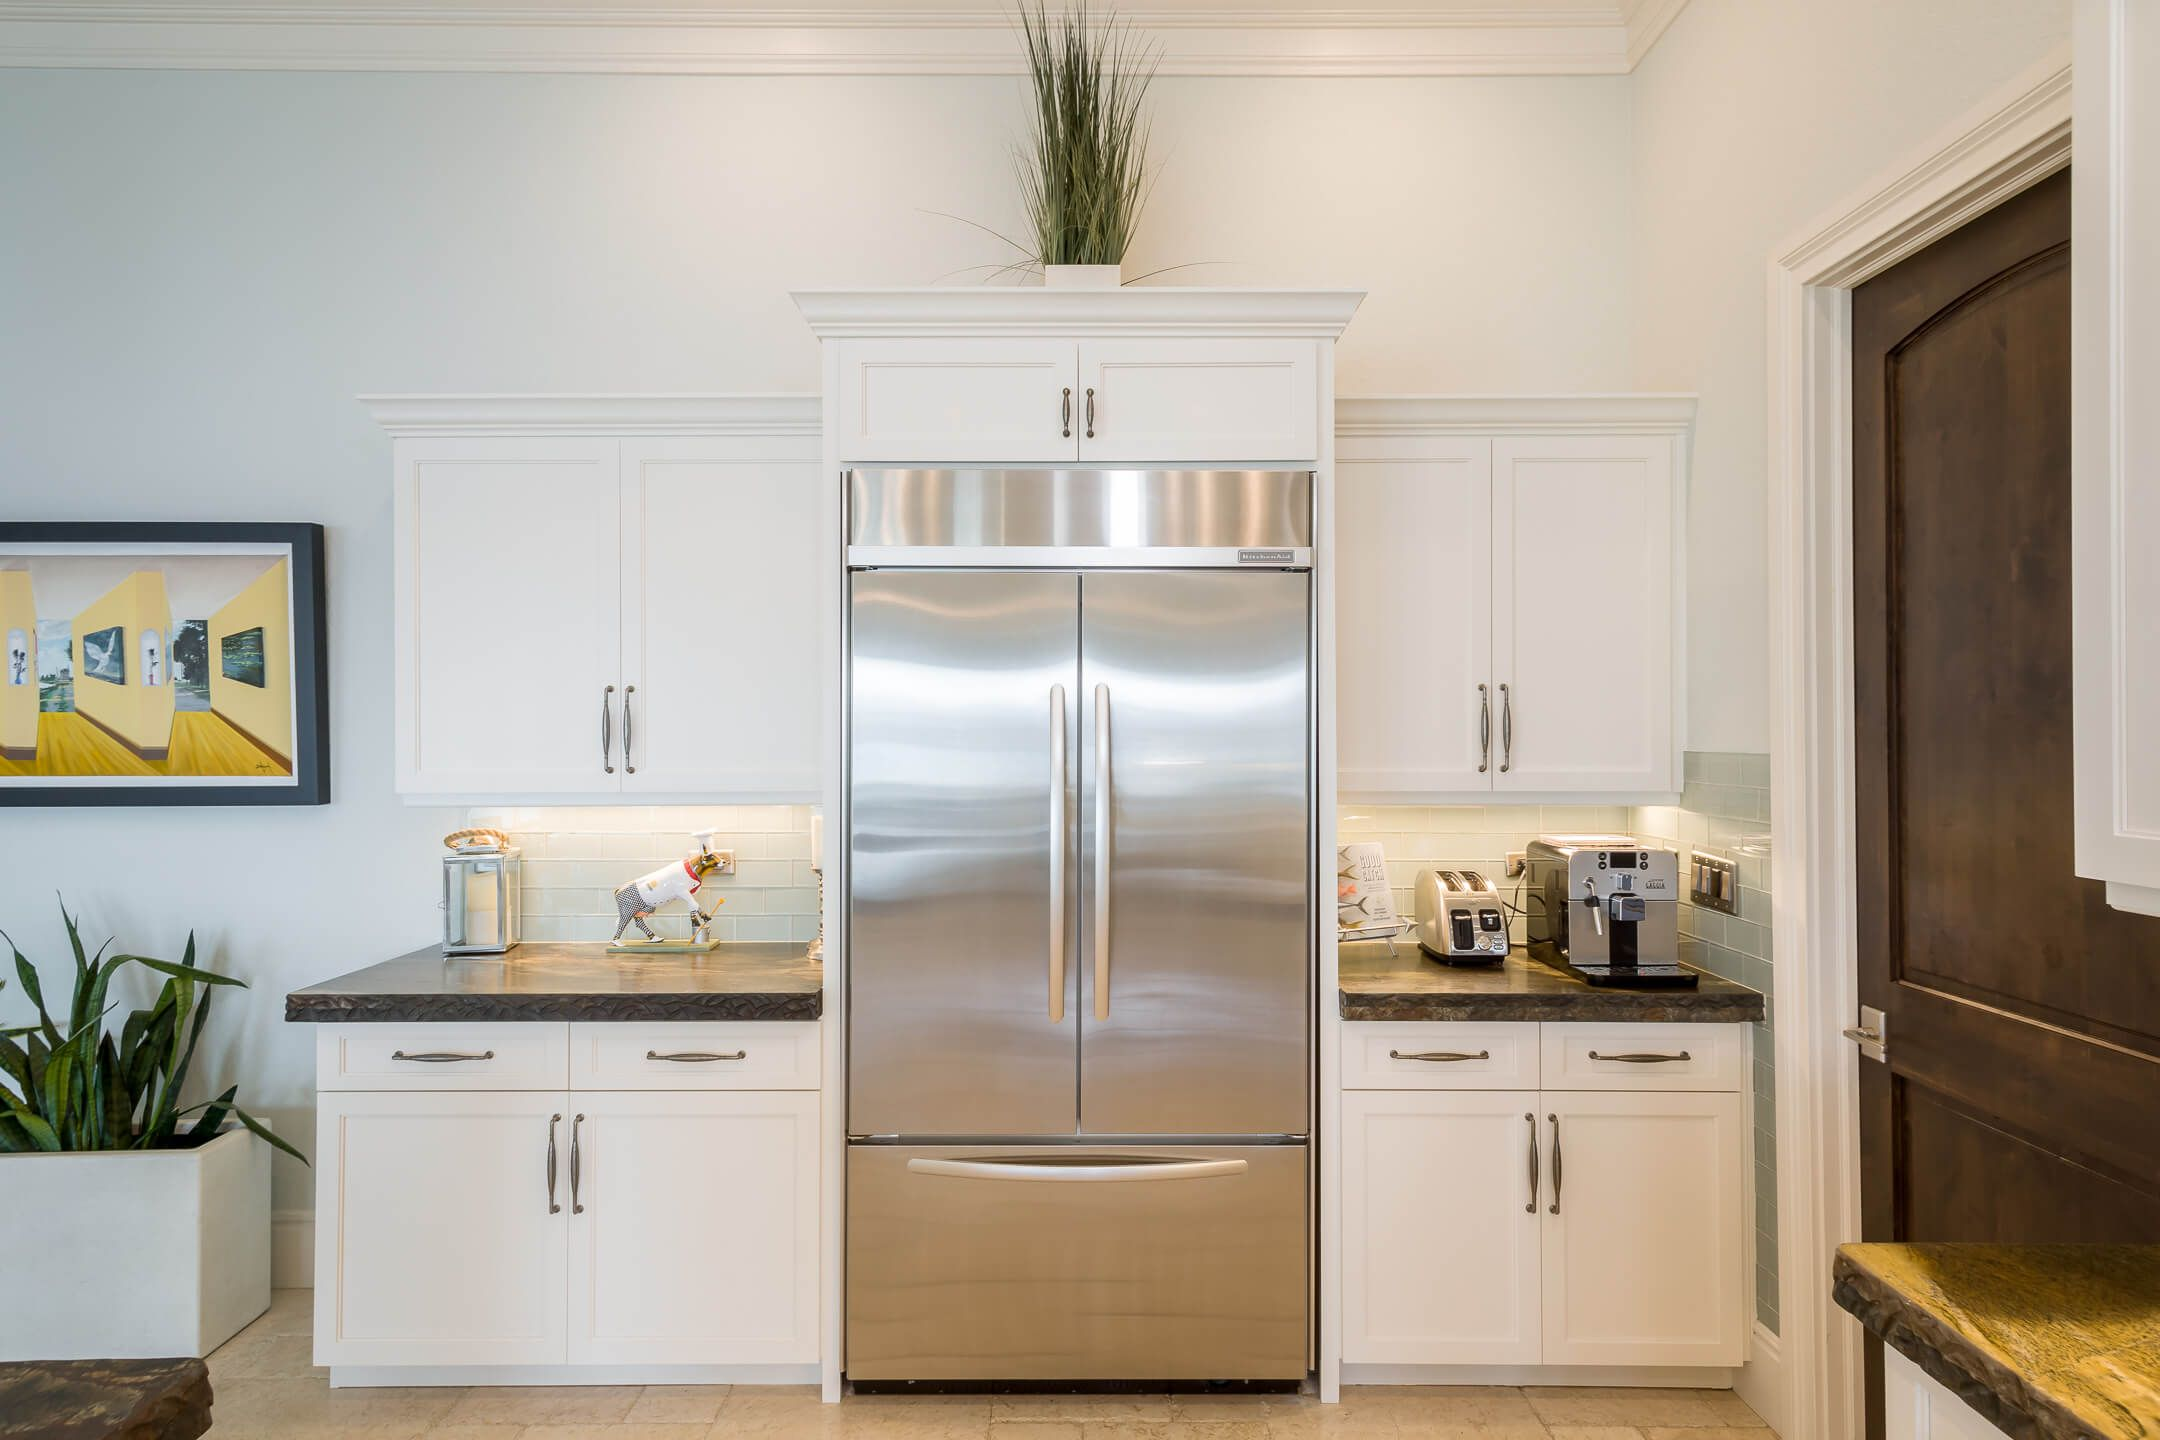 What Do You Want In Your Dream Kitchen In 2020 Cabinet Door Replacement Cabinet Doors Refinishing Cabinets